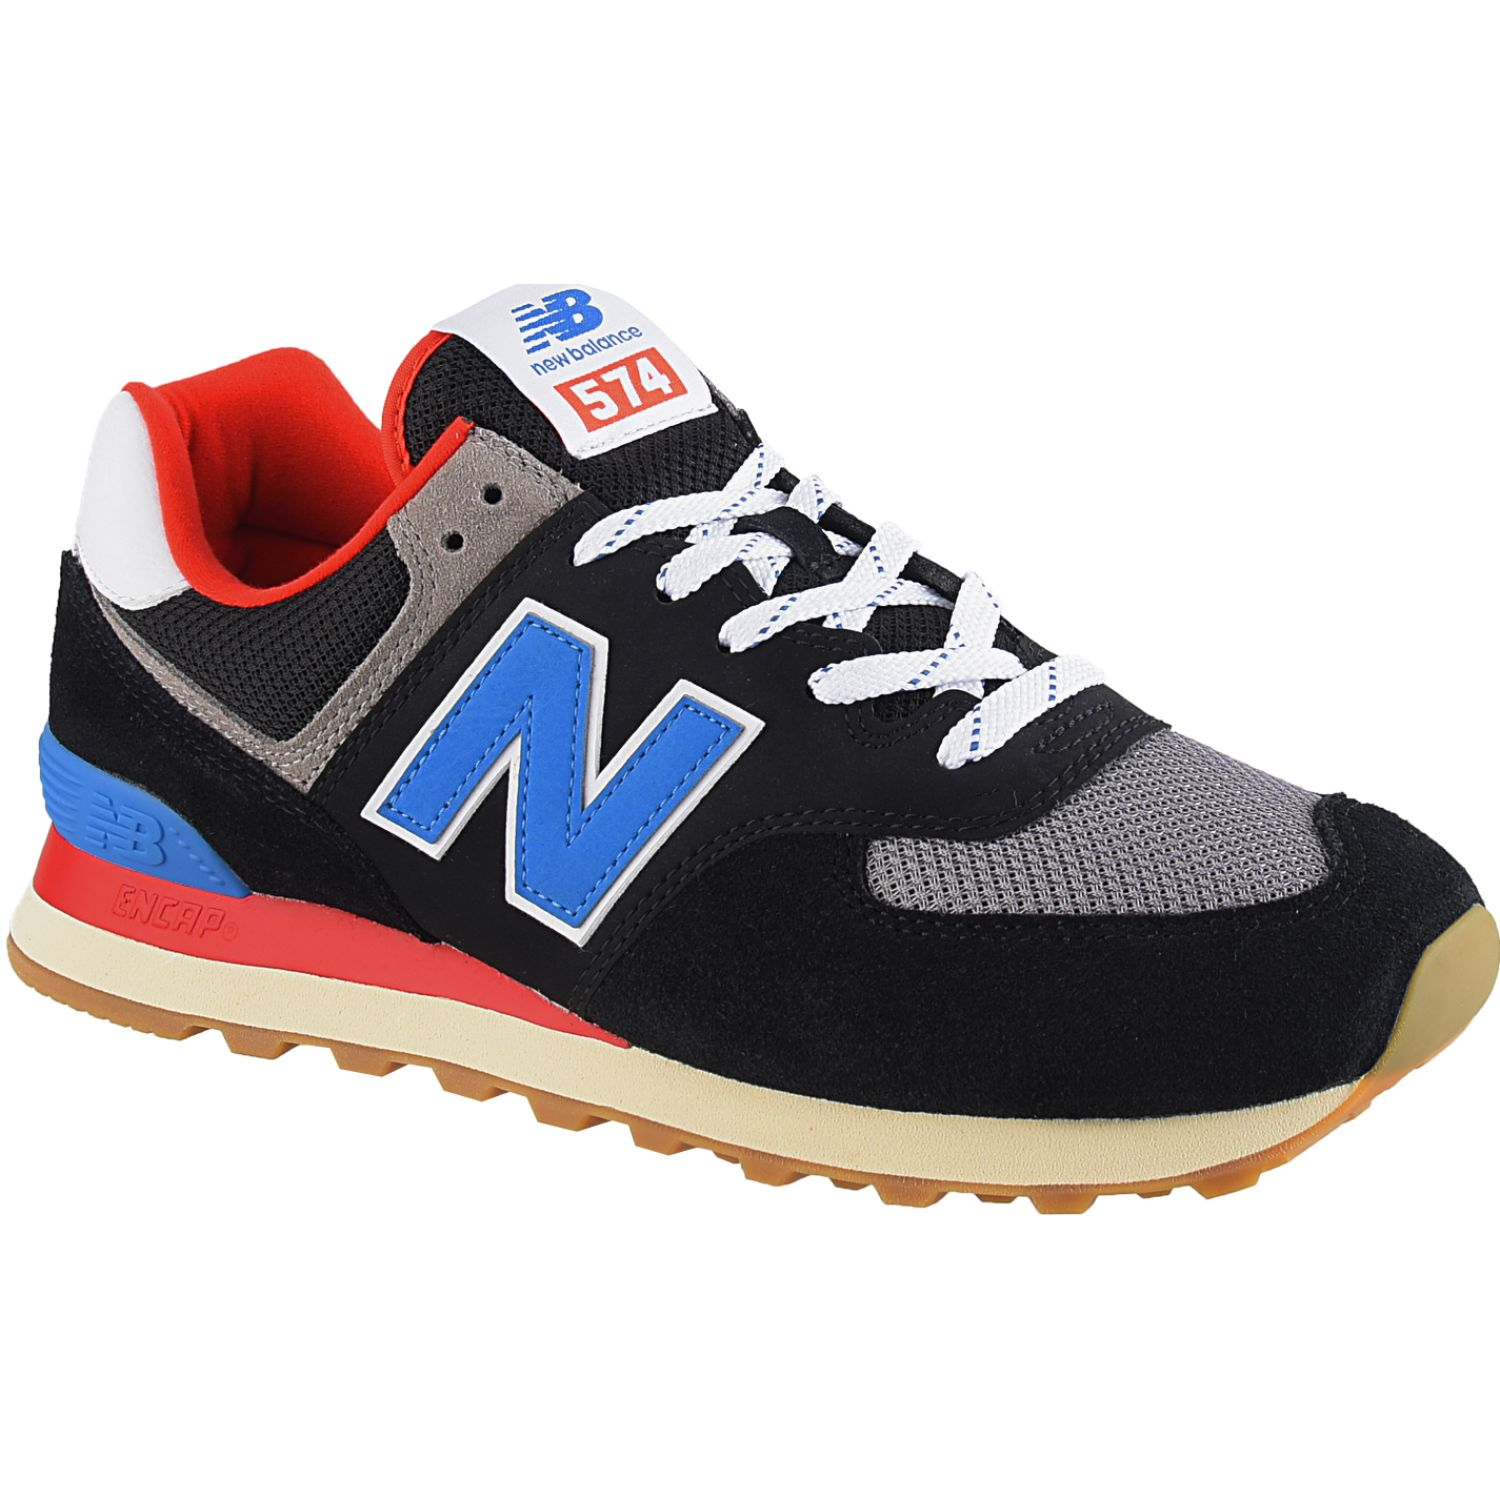 New Balance 574 Negro / celeste Walking